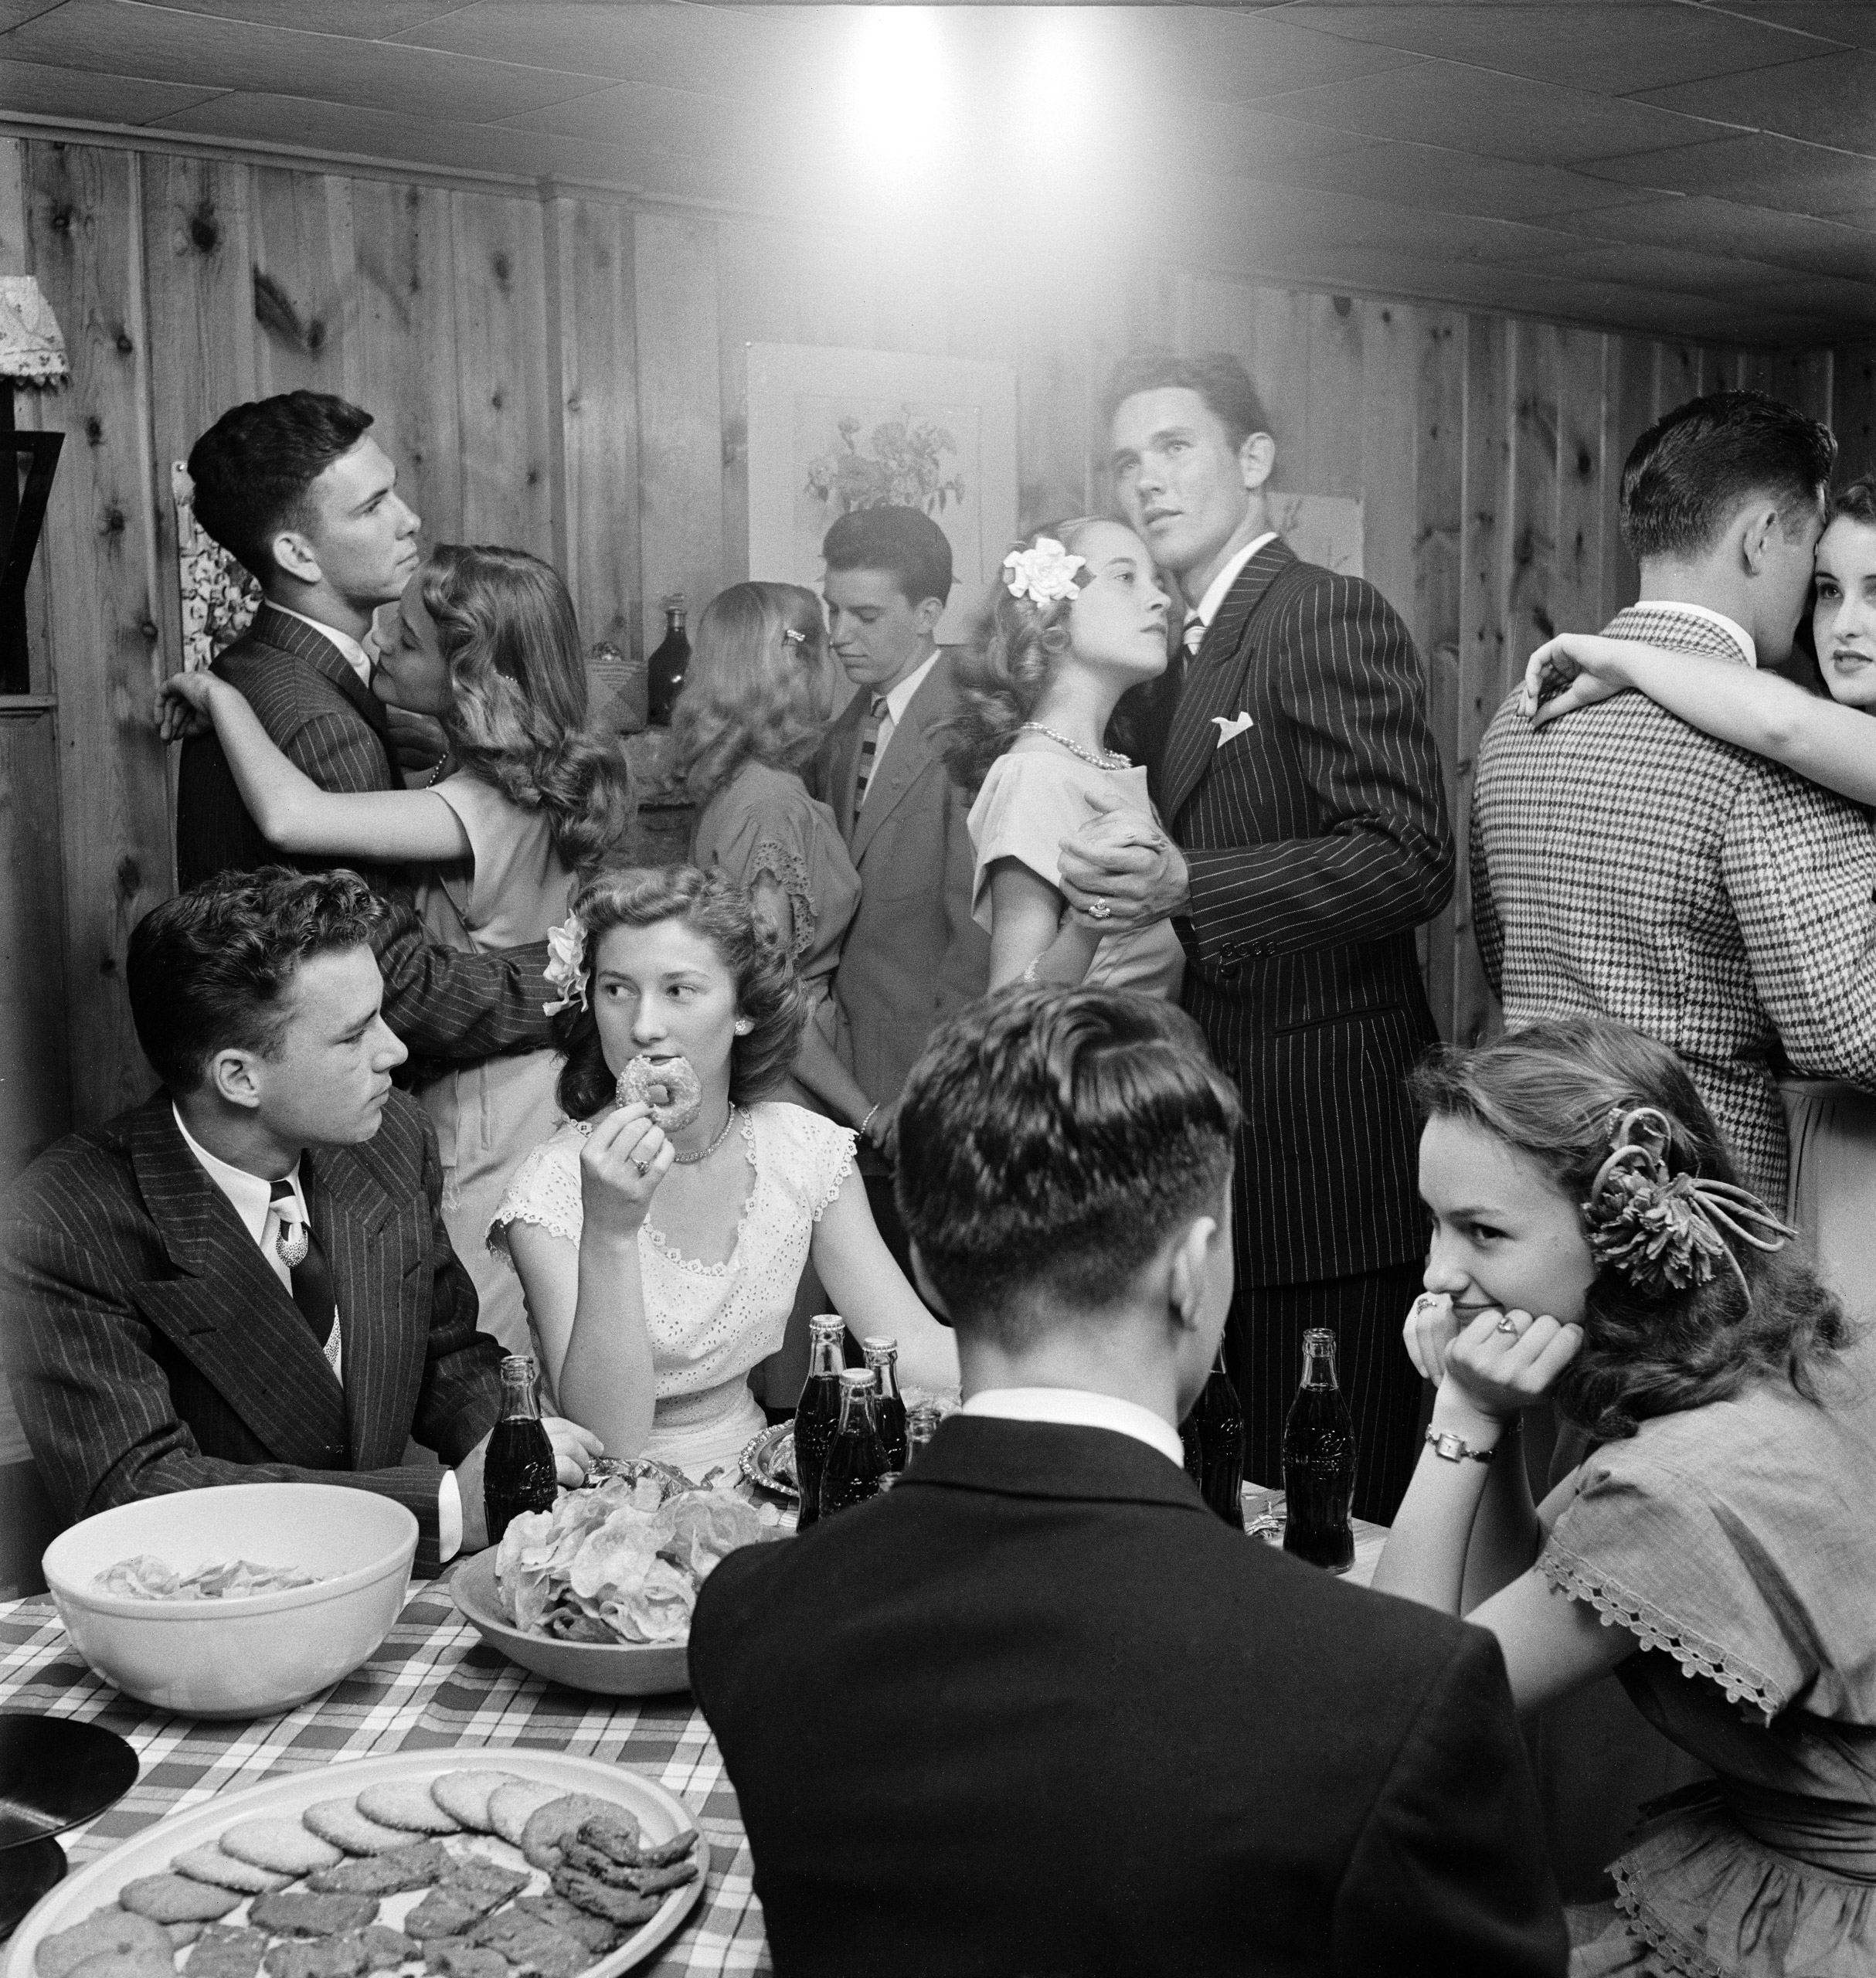 <b>Caption from LIFE.</b> At a party, teen-agers of the Bounds twins' set munch doughnuts and sip Cokes whenever they are not dancing with serious faces to sentimental music. At right, Barbara dances with Jimmy Dick.